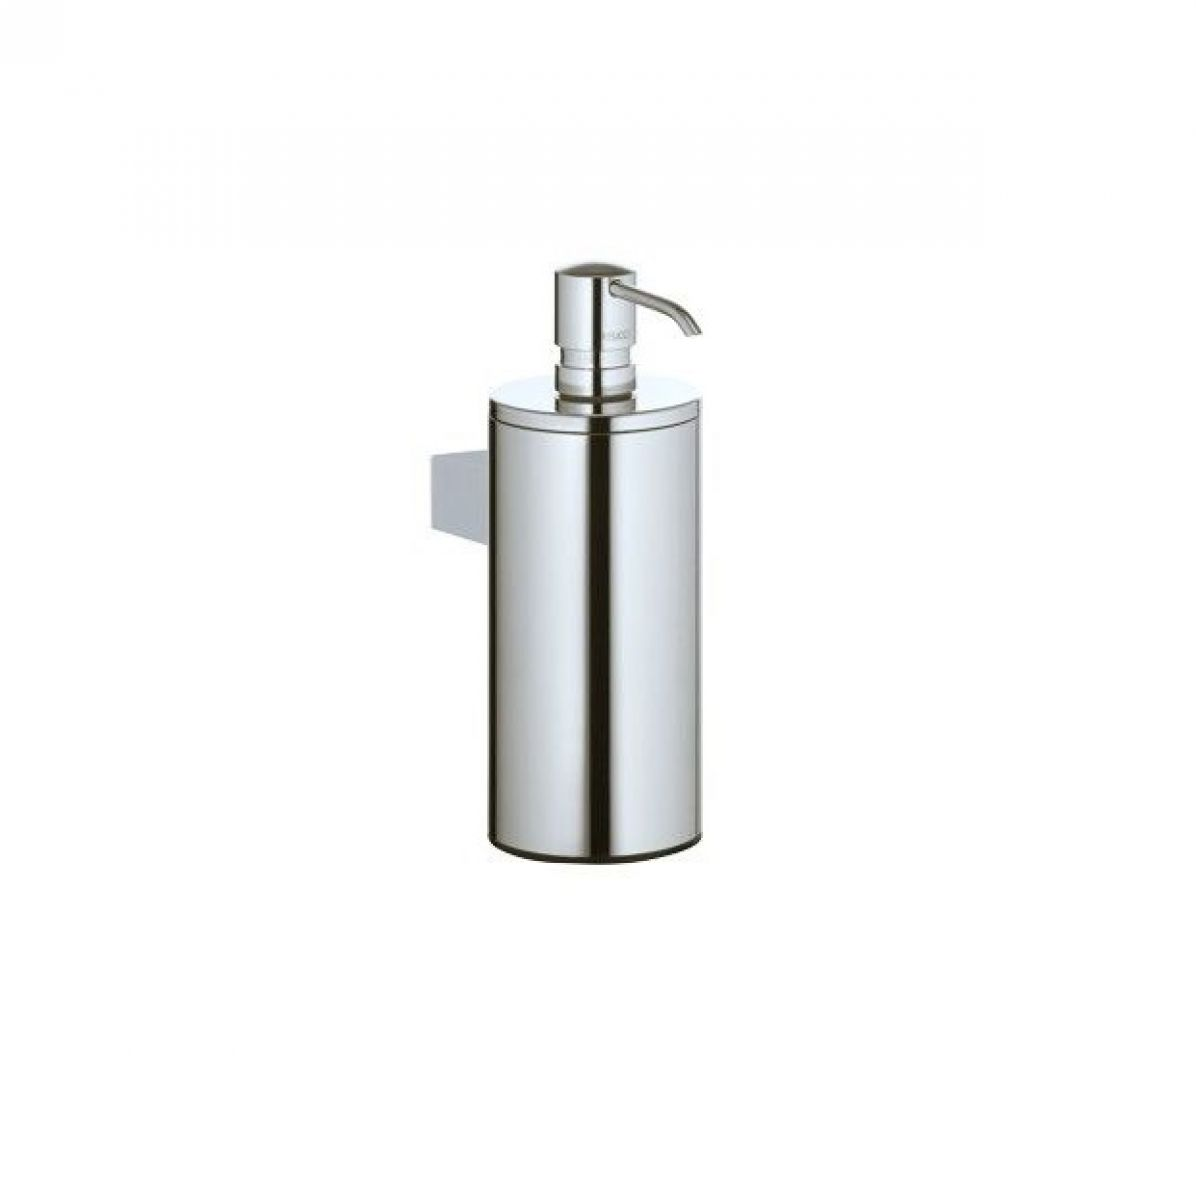 Keuco Plan Lotion Dispenser